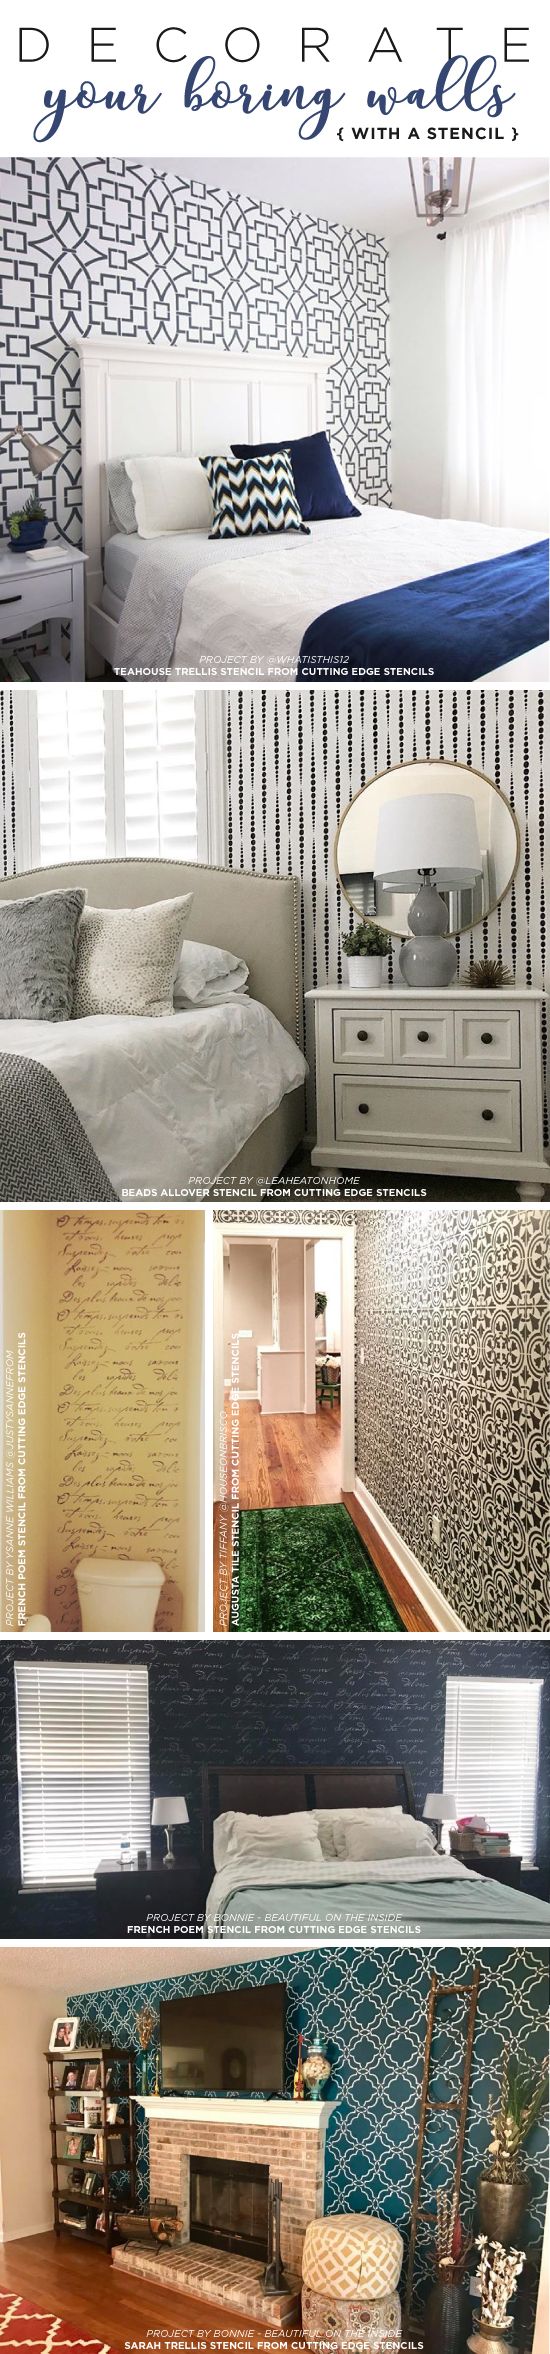 Cutting Edge Stencils shares easy and affordable DIY decorating ideas for accent walls using stencil patterns. http://www.cuttingedgestencils.com/wall-stencils-stencil-designs.html